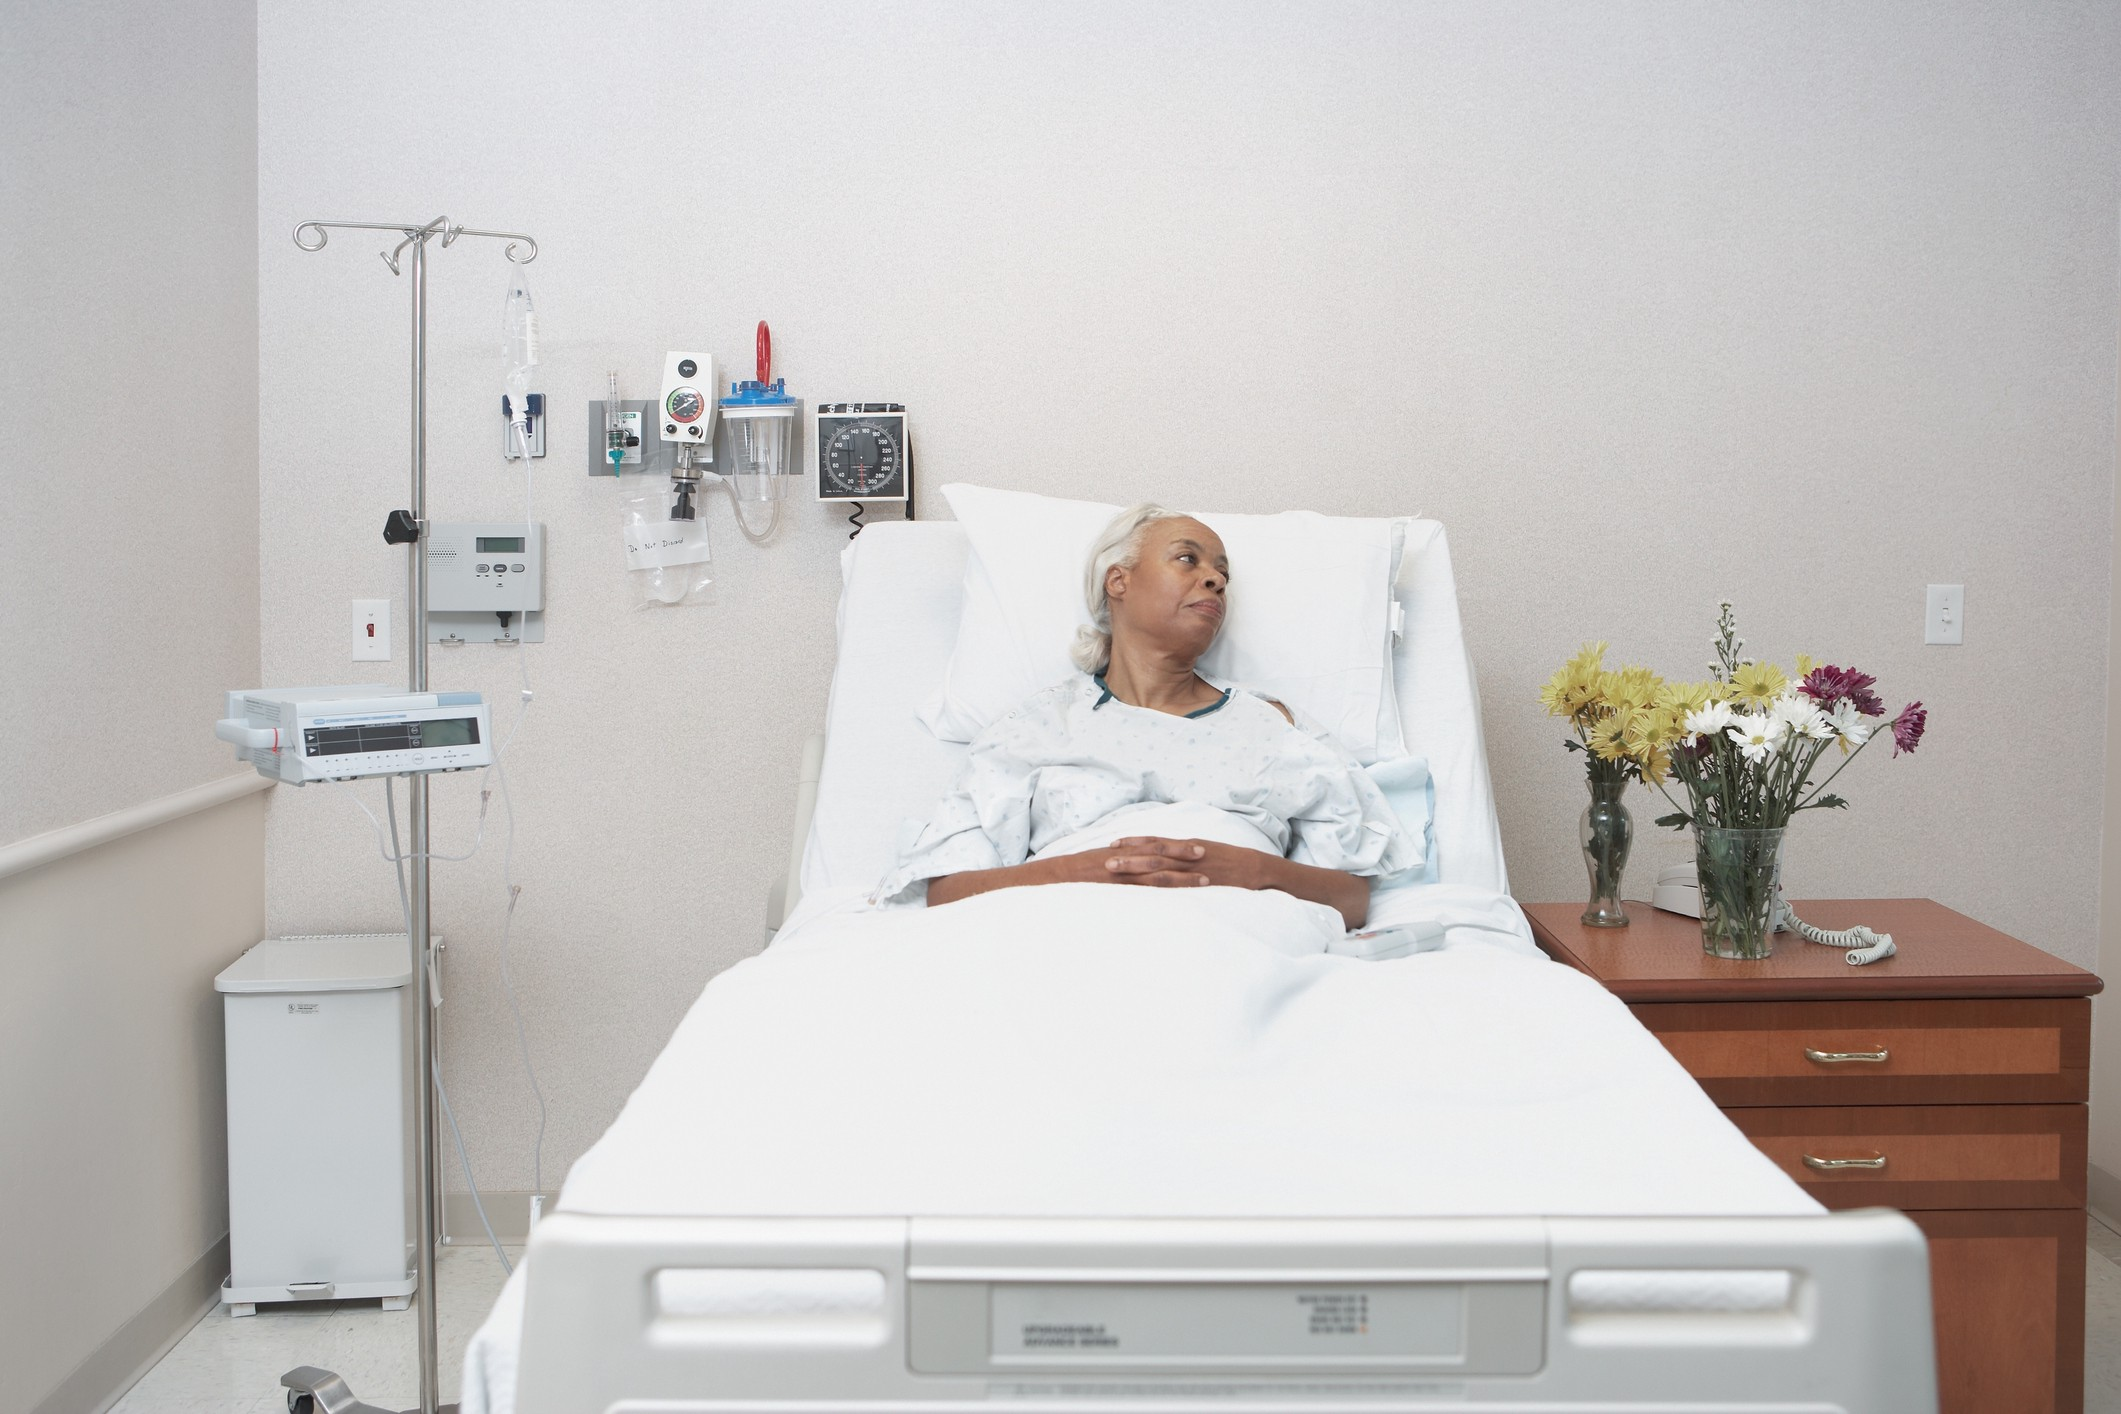 An elderly Black woman as a patient at the hospital.